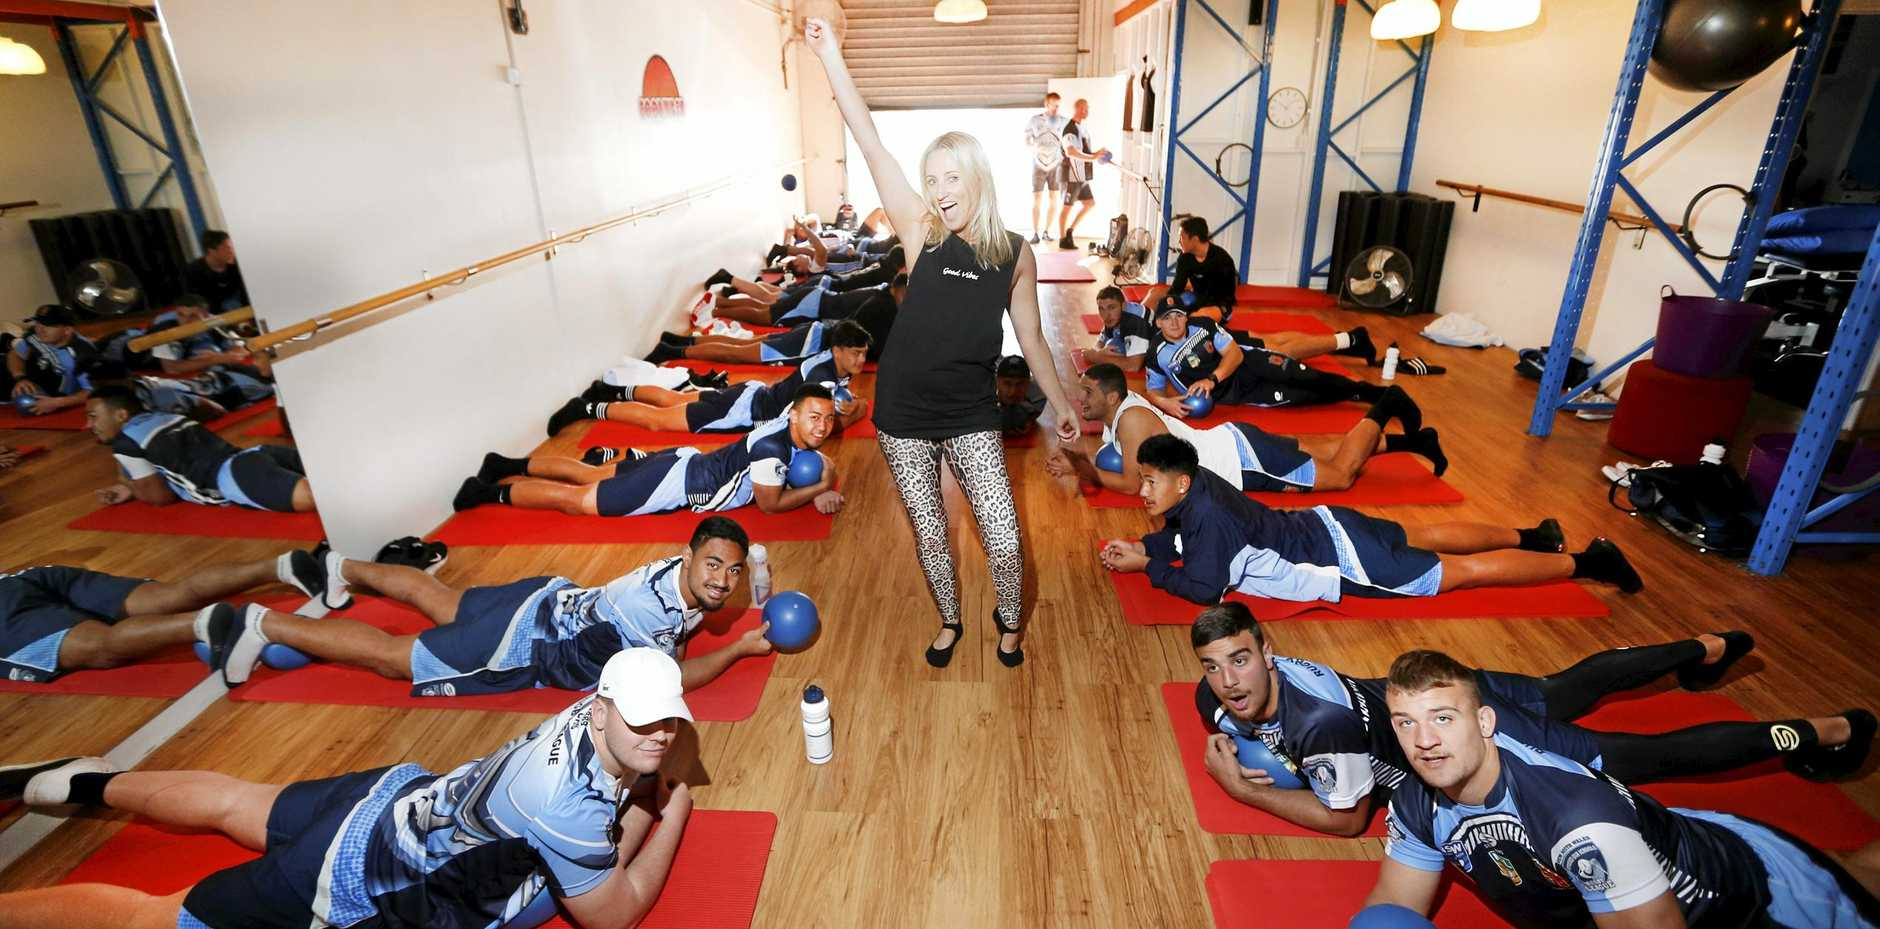 HOLD THAT POSE: The NSW Combined High Schools squad got in some recovery at Good Vibes Pilates & Yoga in South Tweed last week with instructor Kylie Beeby.